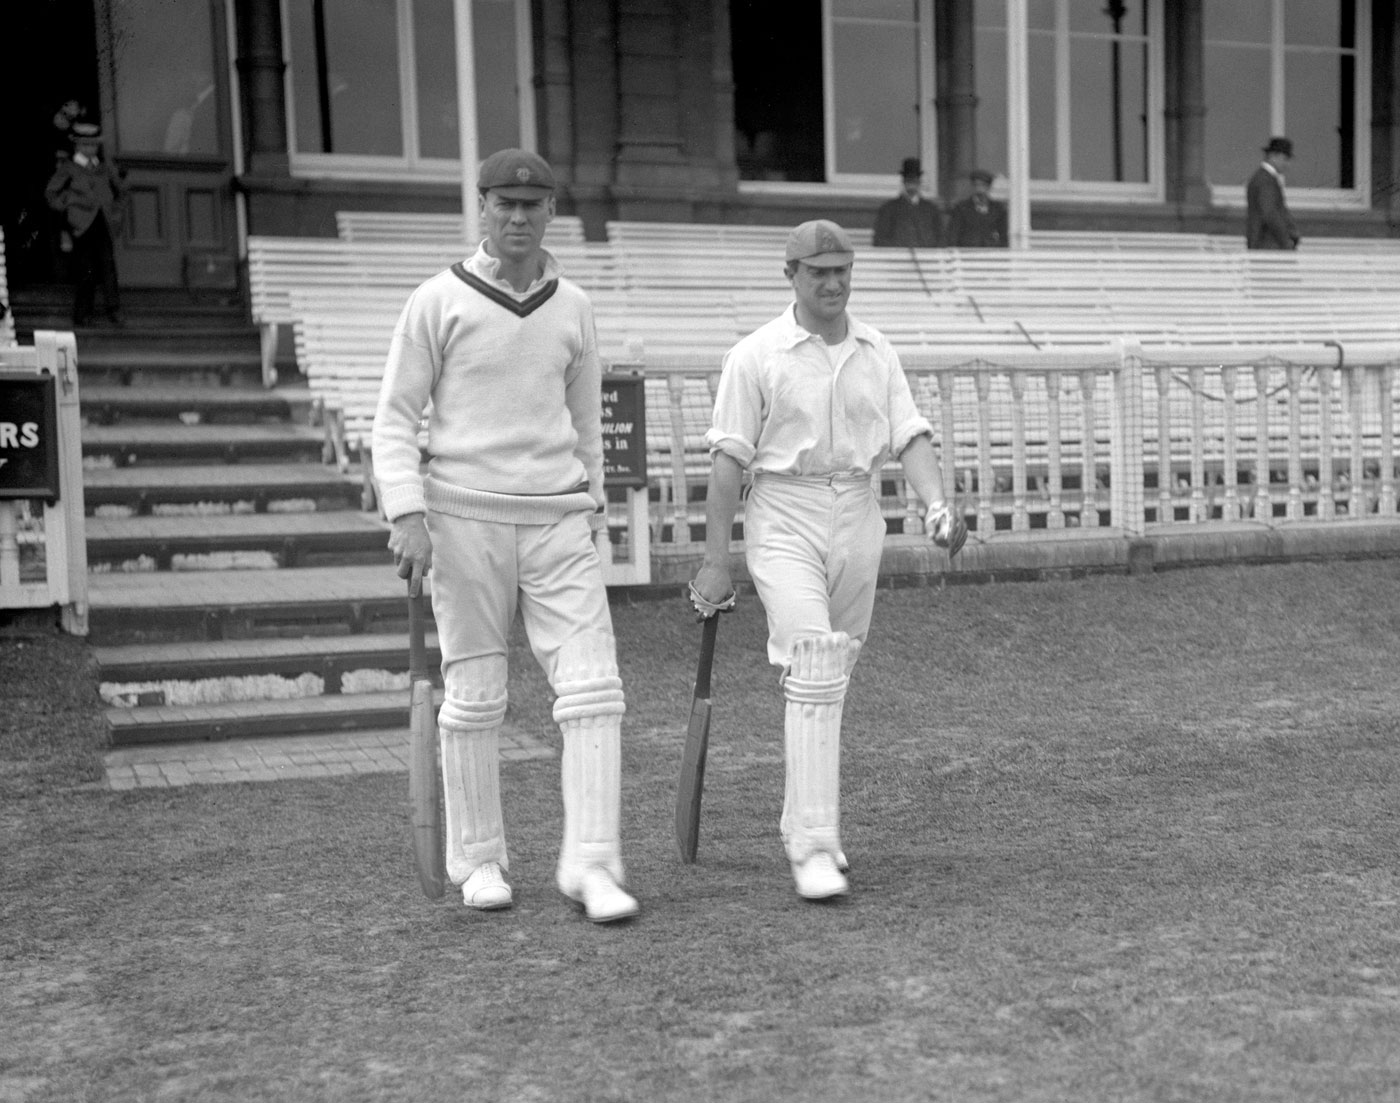 Faulkner (right) walks out to bat with Jimmy Sinclair at Lord's in 1907. On that tour, Faulkner had match figures of 9 for 75 during the Headingley Test